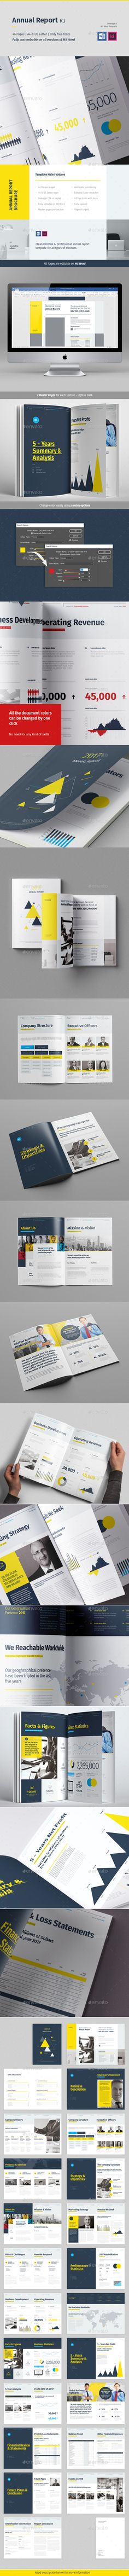 Annual Report Brochure — InDesign INDD #brochure #shareholders • Available here → https://graphicriver.net/item/annual-report-brochure/20979247?ref=pxcr